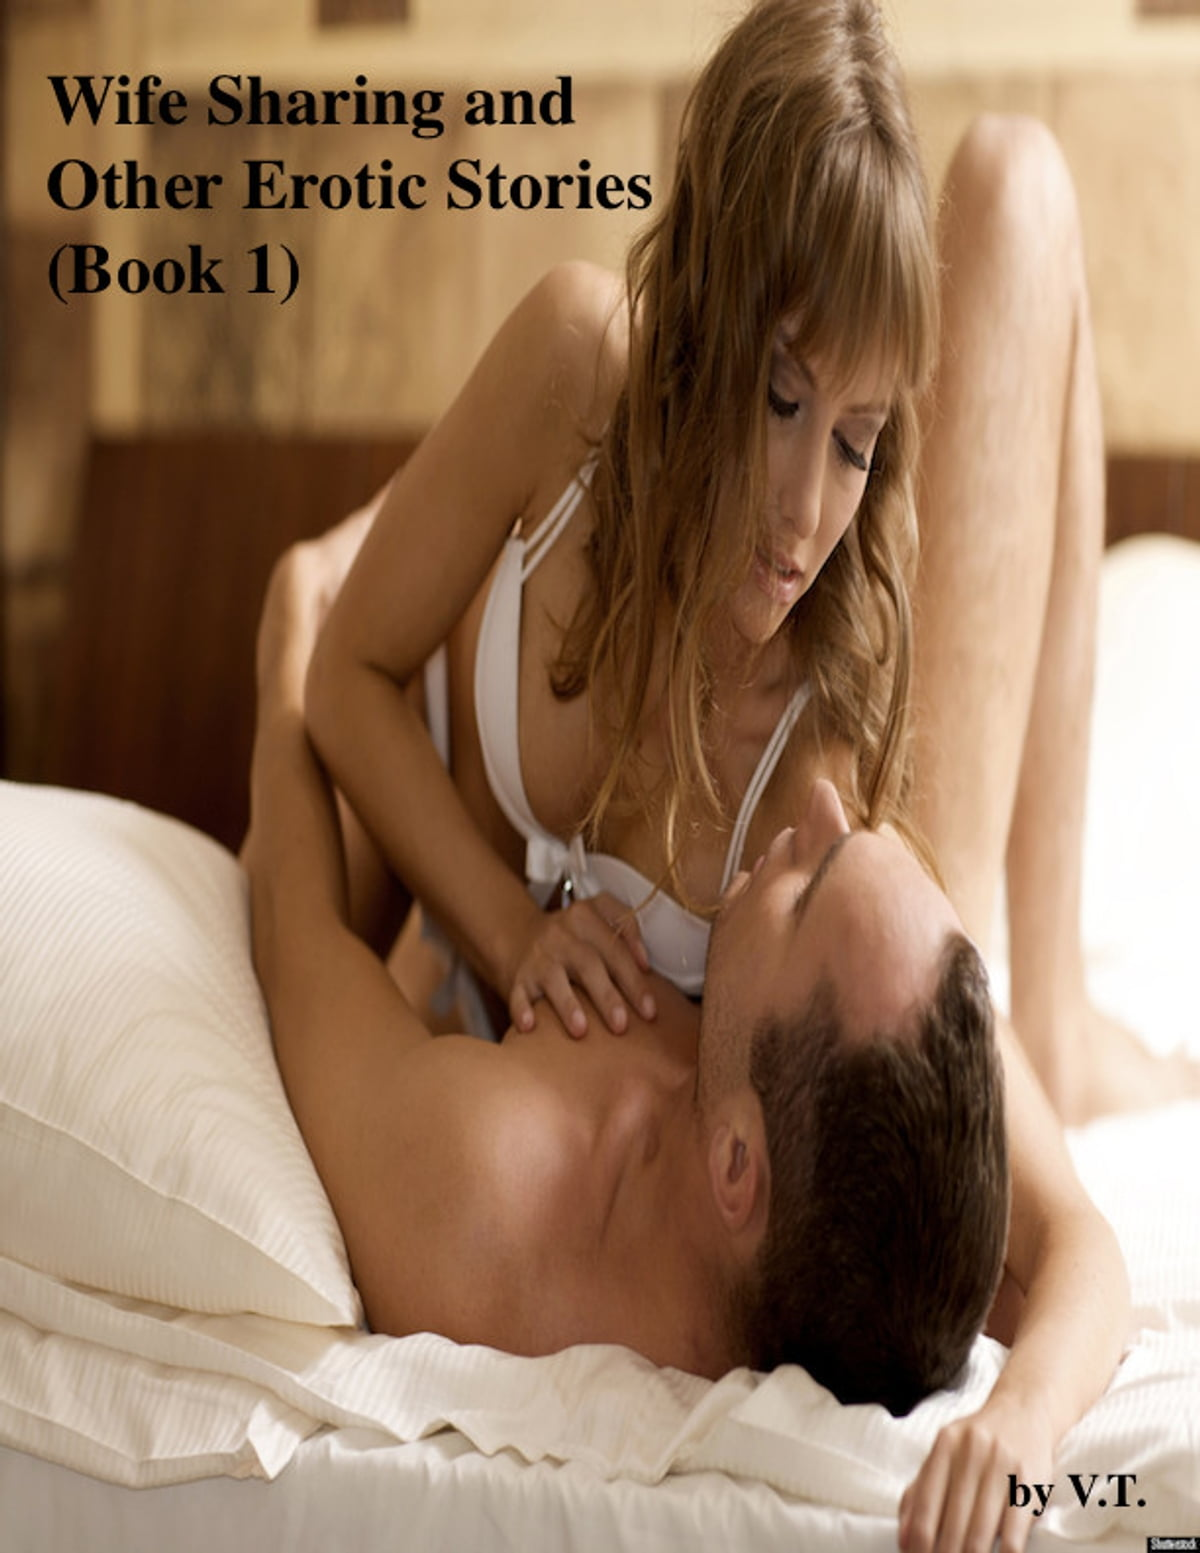 Wife Sharing And Other Erotic Stories Book 1 Ebook By V T 1230000236983 Rakuten Kobo